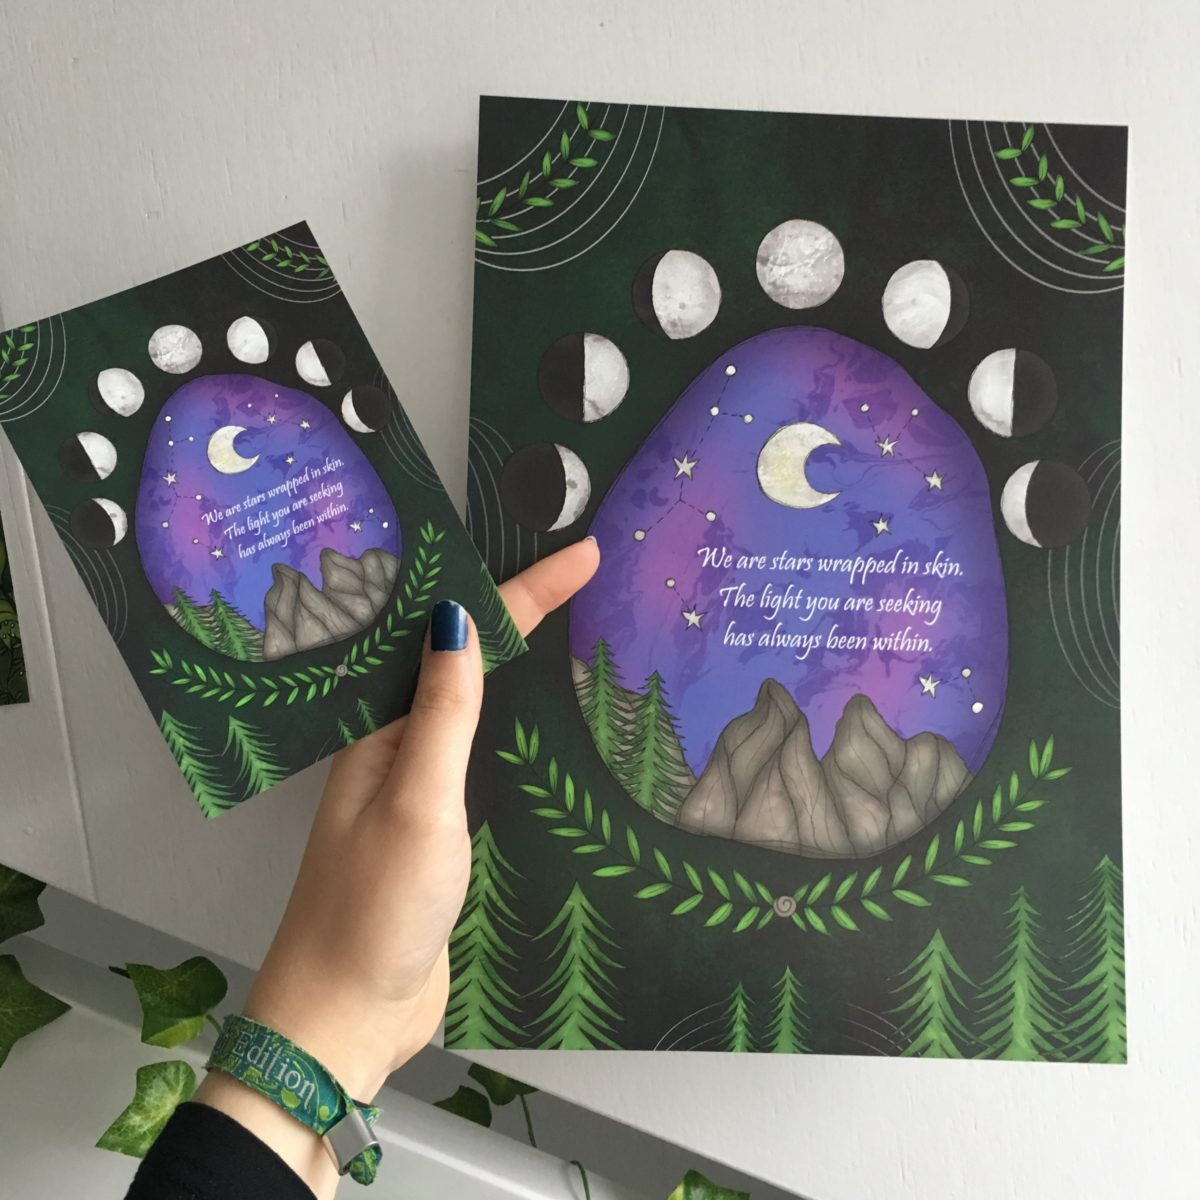 We-Are-Stars-Wrapped-In-Skin-Spiritual-Postcard-SB-Designs-Creations-Moon-Phases-Nature-e1550562053624